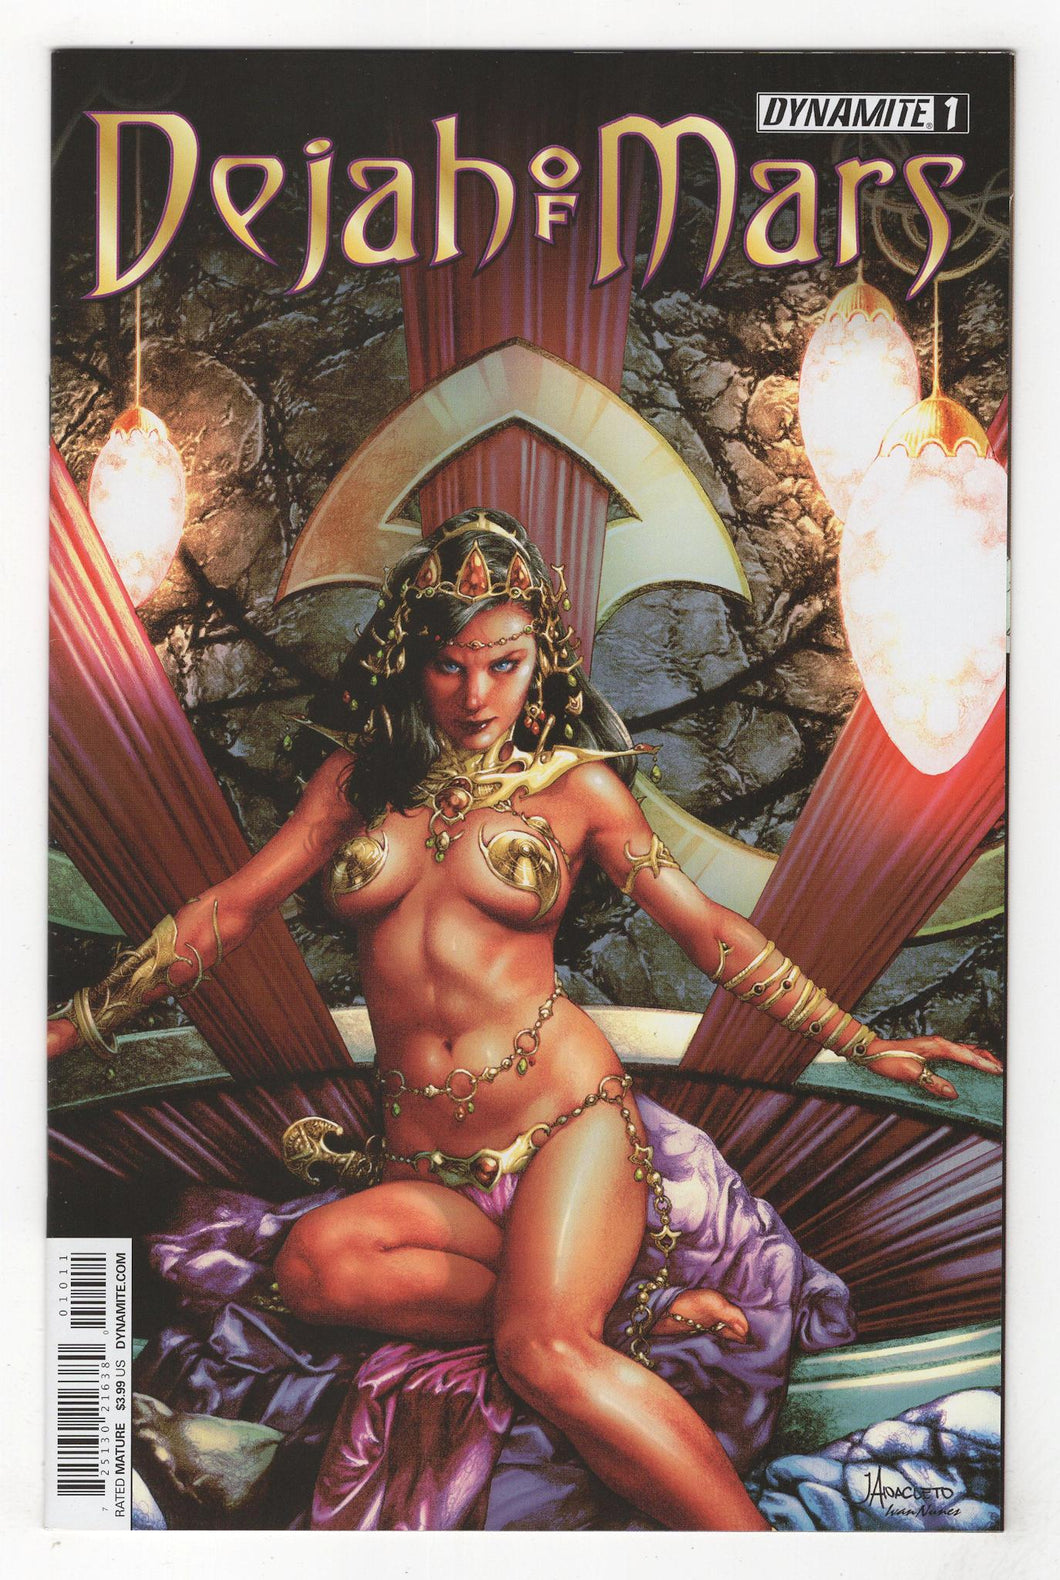 Dejah of Mars #1 Cover Front